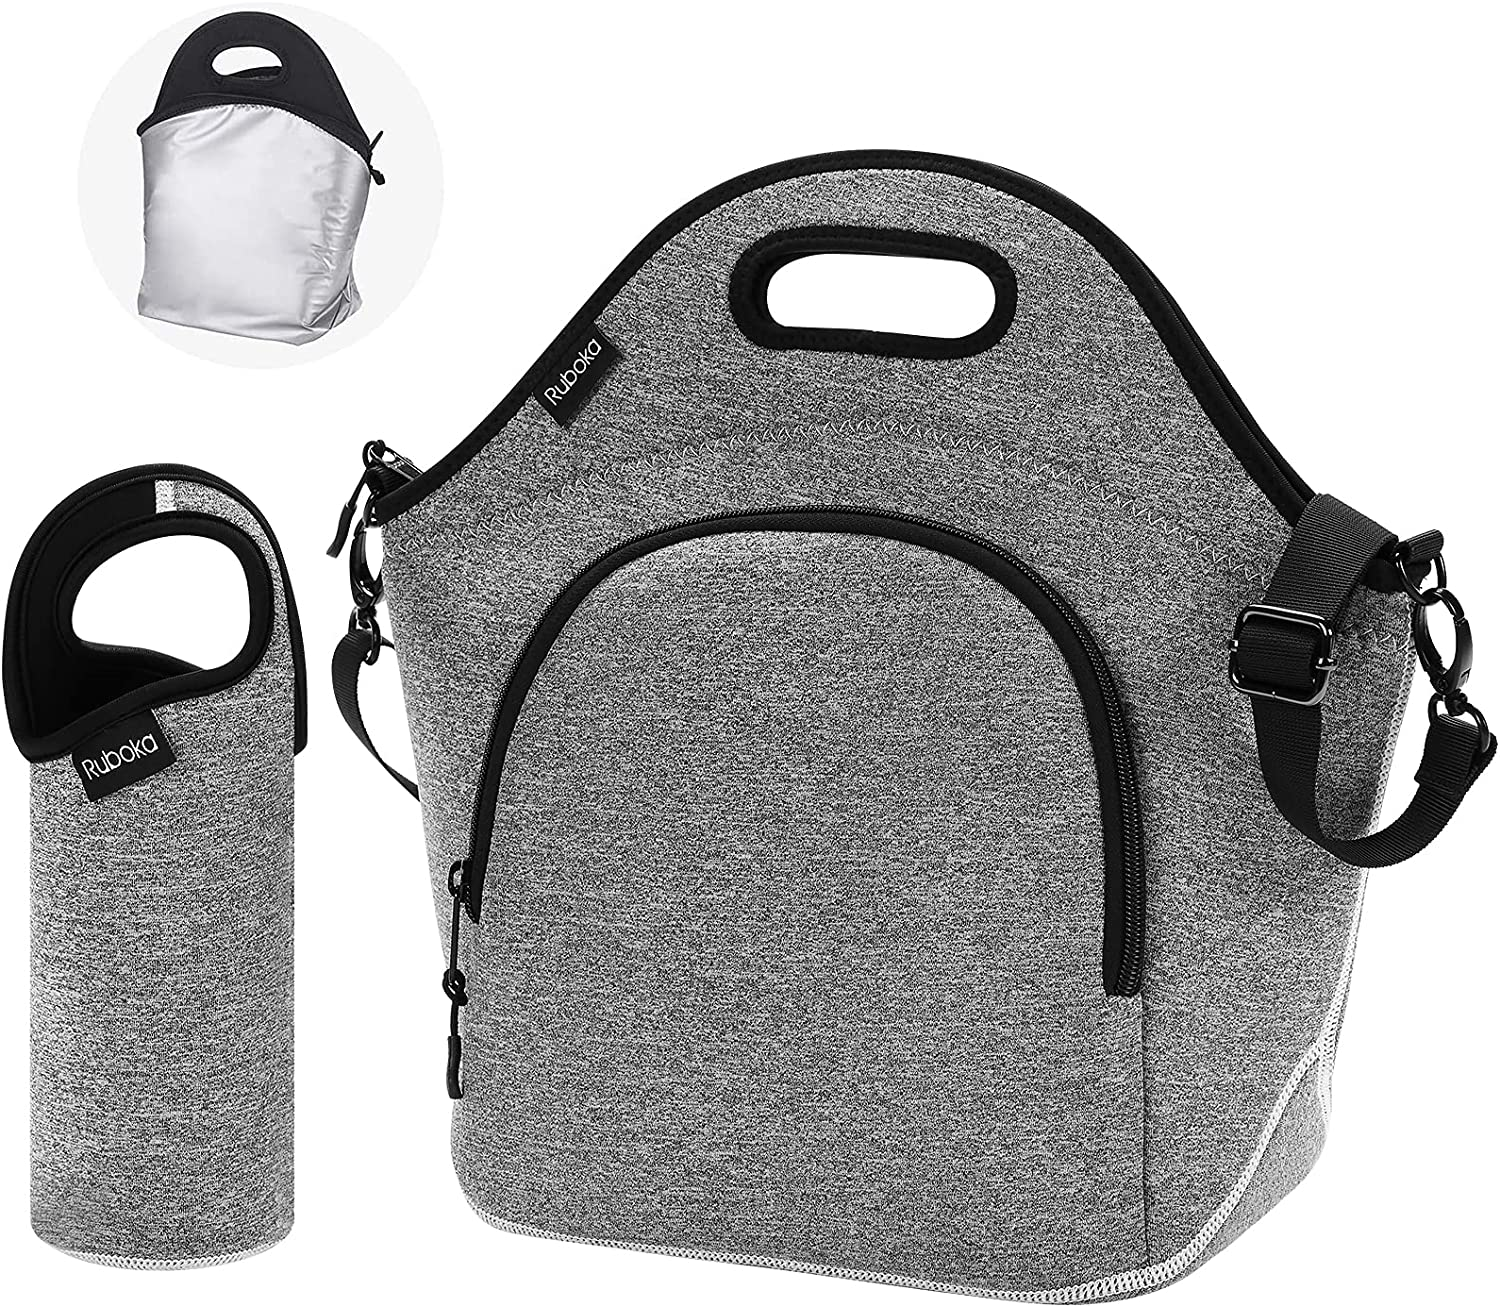 """Neoprene Lunch Bag, Ruboka Lunch Tote Insulated Lunch Bag, Large Lunch Tote Bags Reusable Lunch Box With Adjustable Detachable Shoulder Straps For Outdoor/School/Picnic/Work 13.5""""x 13.5""""x 6.5"""",Grey"""